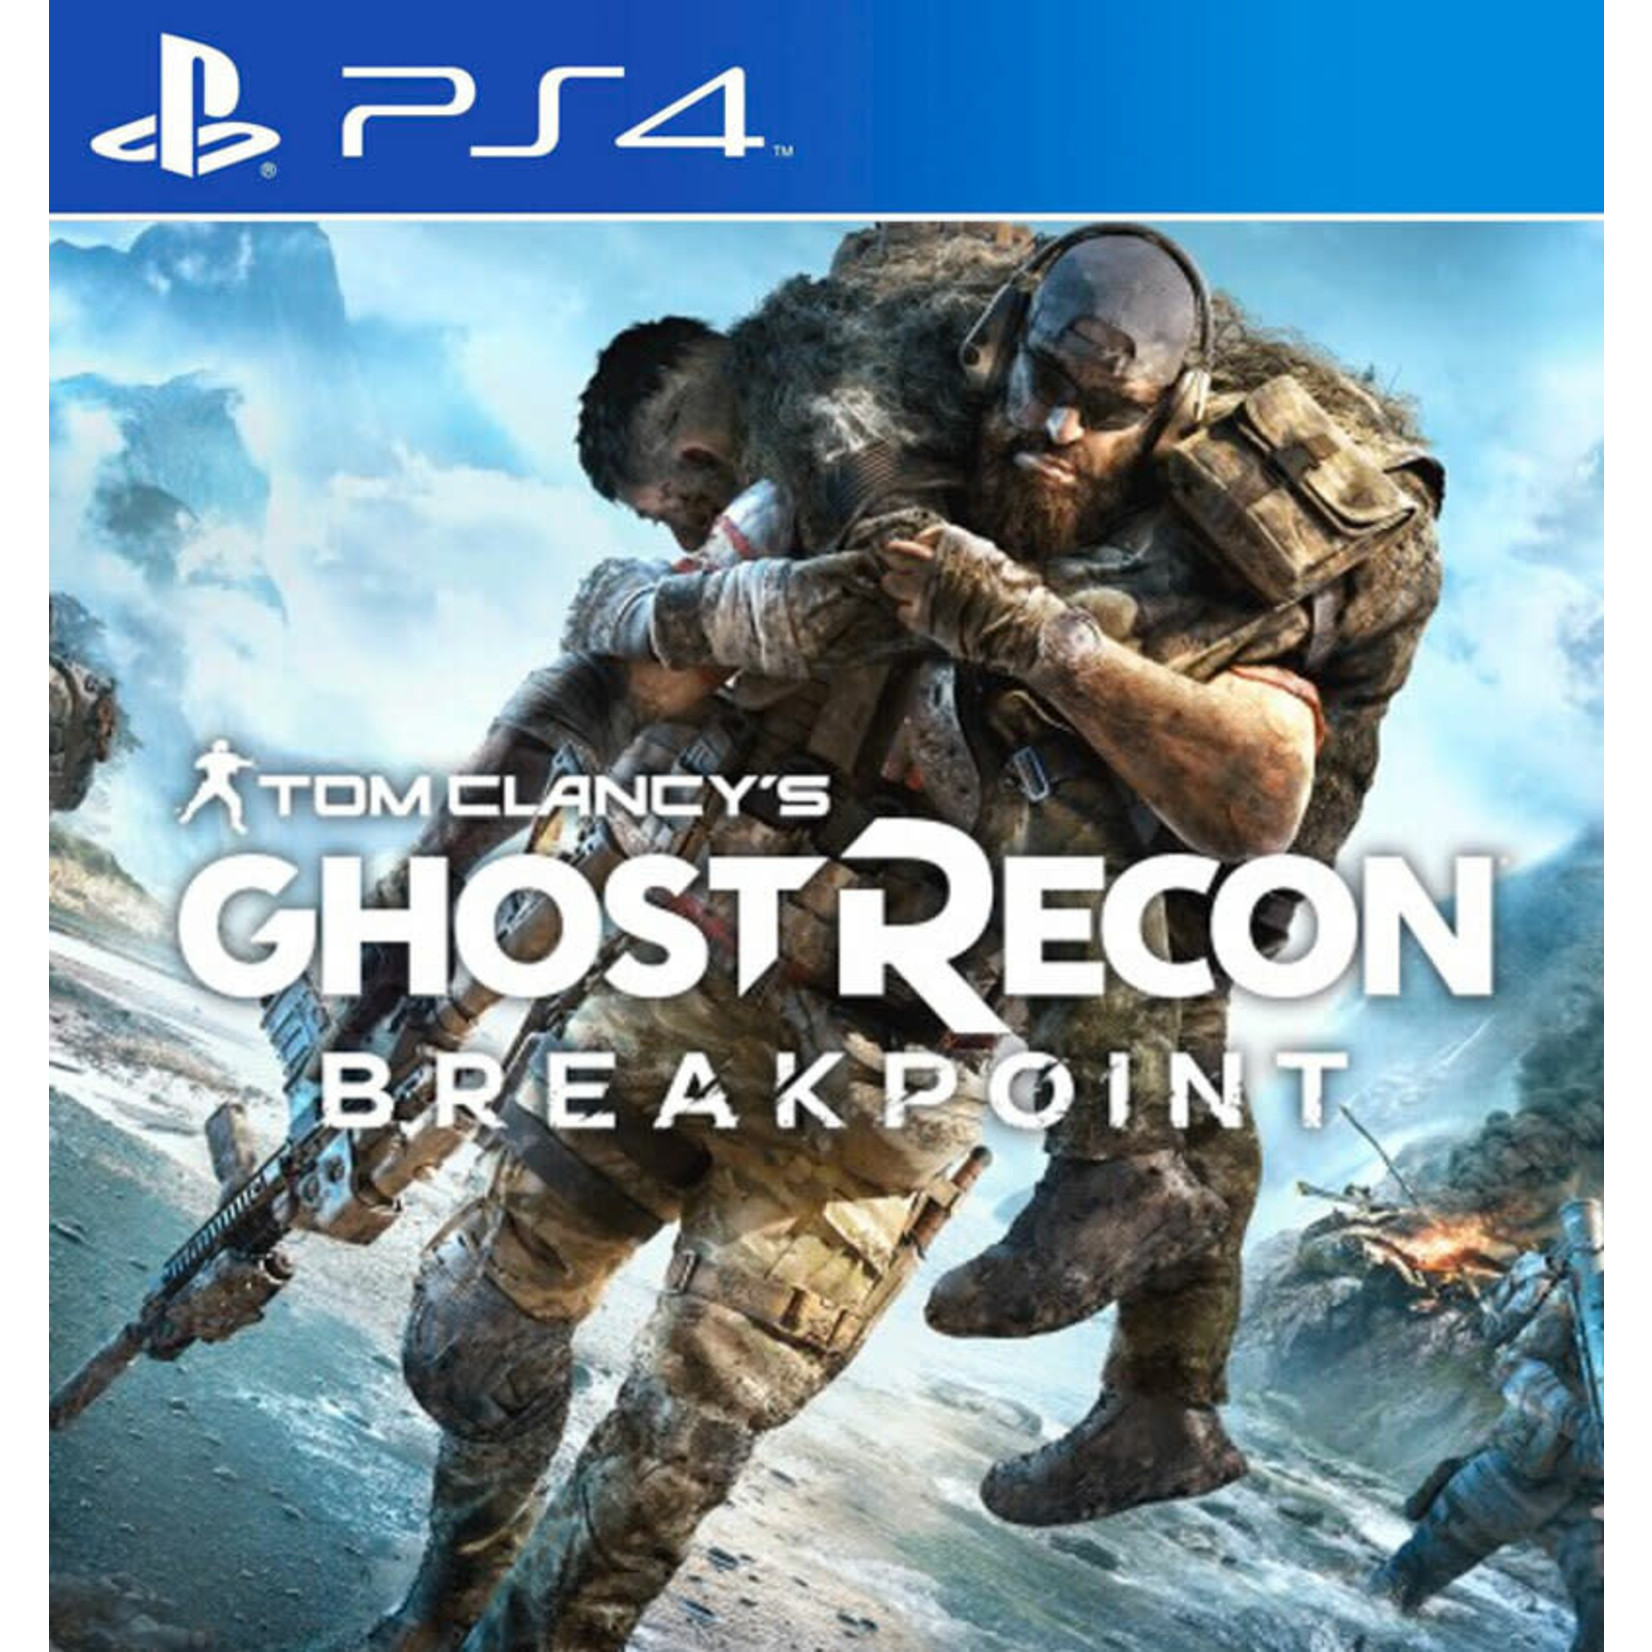 PS4U-Tom Clancy's Ghost Recon Breakpoint